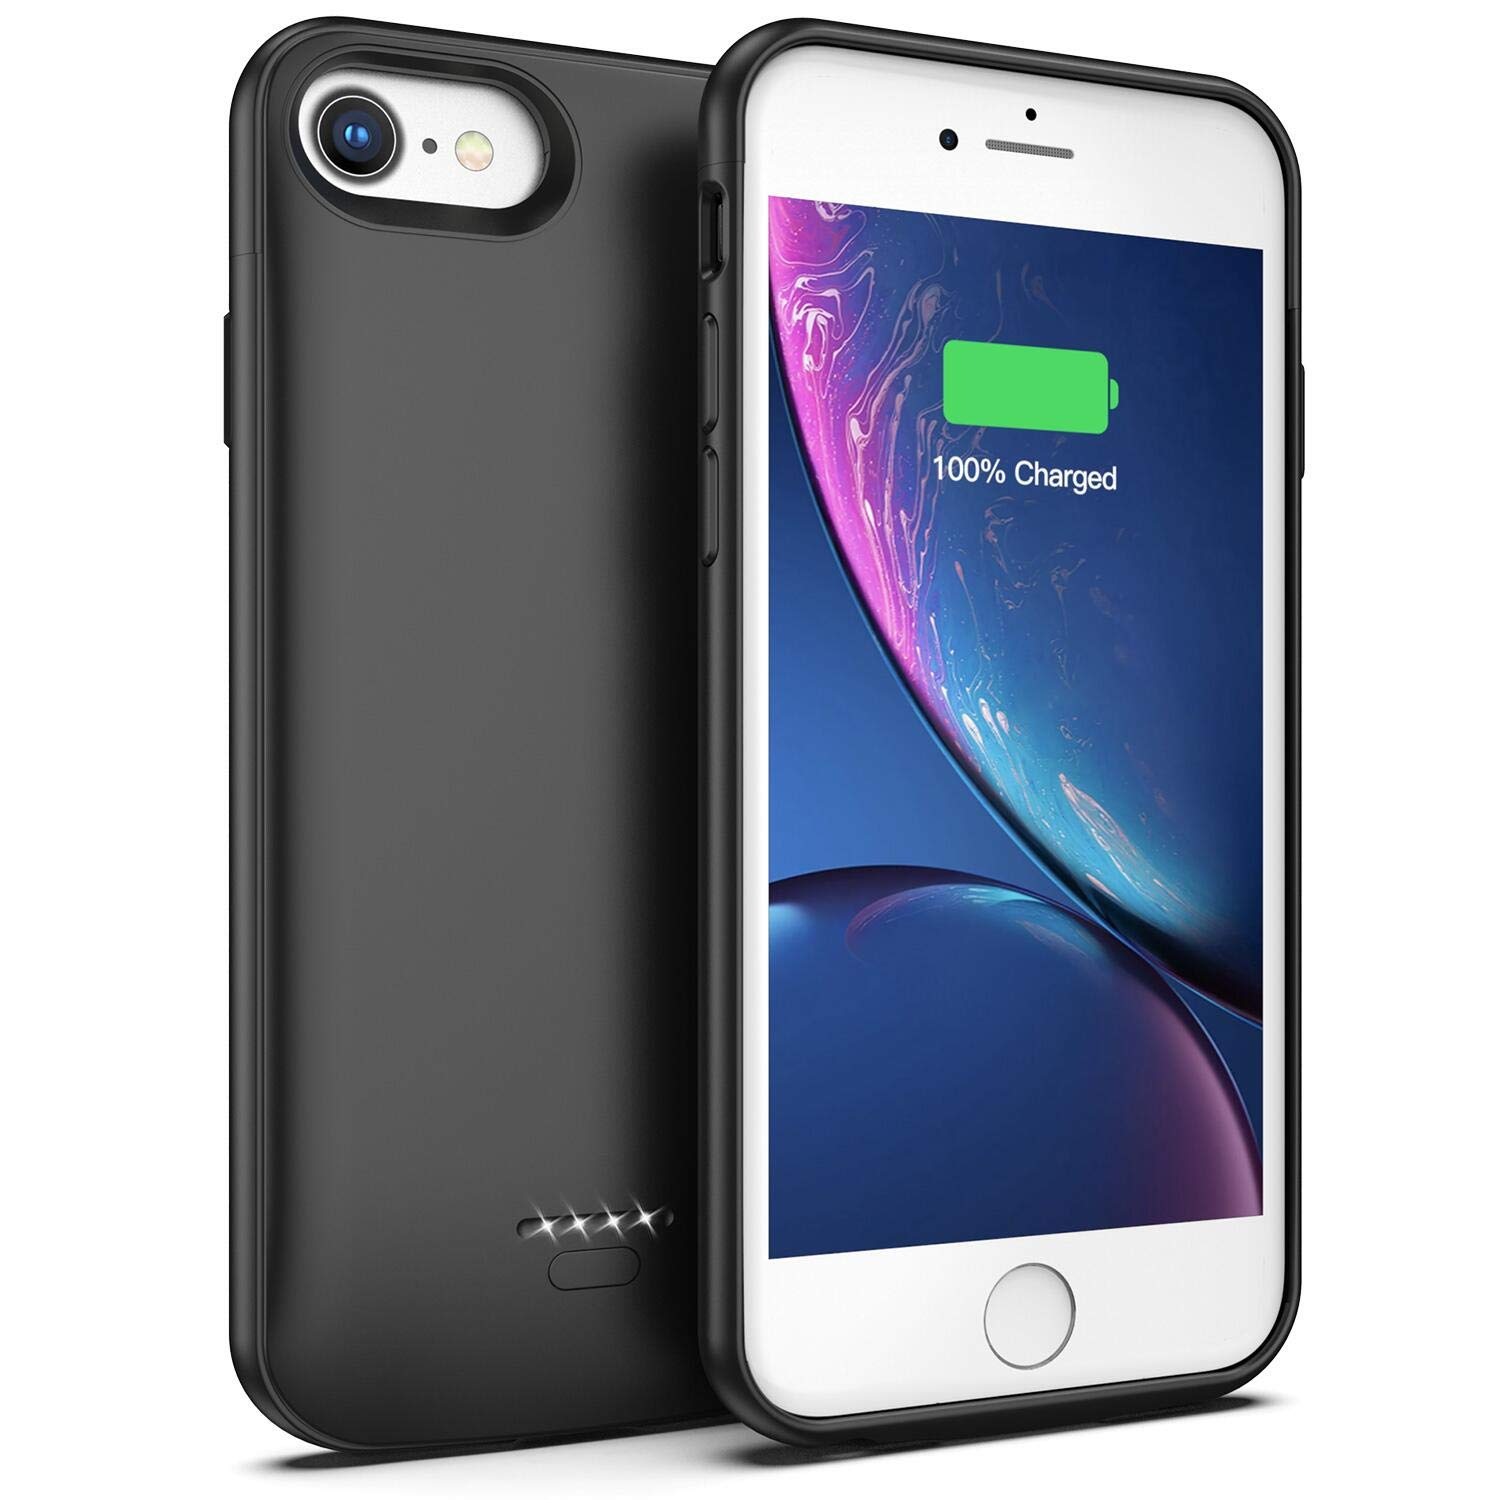 Battery Case for iPhone 7/8, 4000mAh Portable Protective Charging Case Compatible with iPhone 7/8 (4.7 inch) Rechargeable Extended Battery Charger Case Lonlif XDL-610M